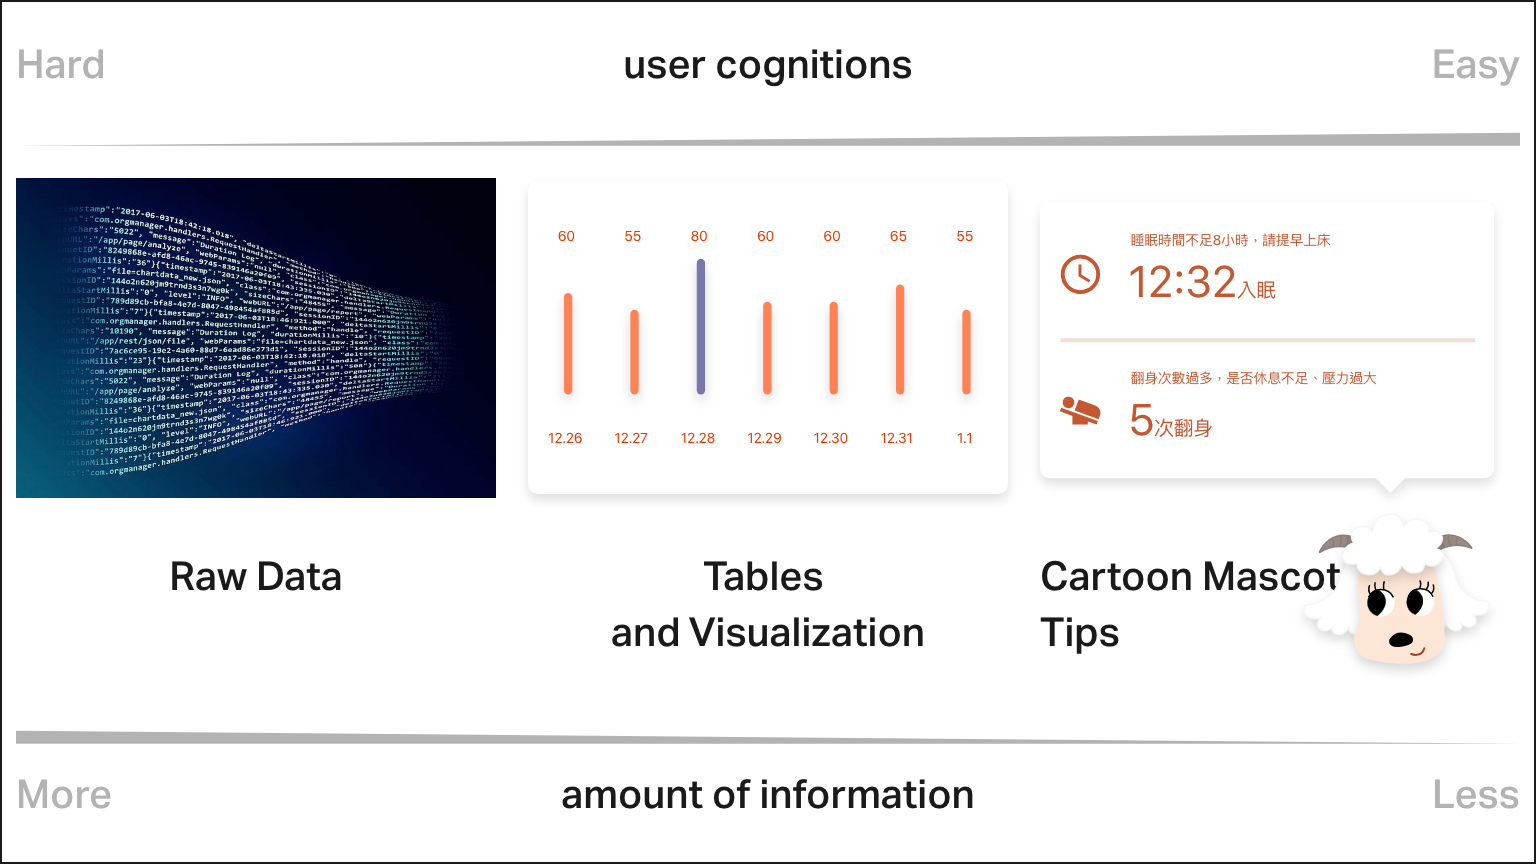 motional design and raw data/data visualization compares